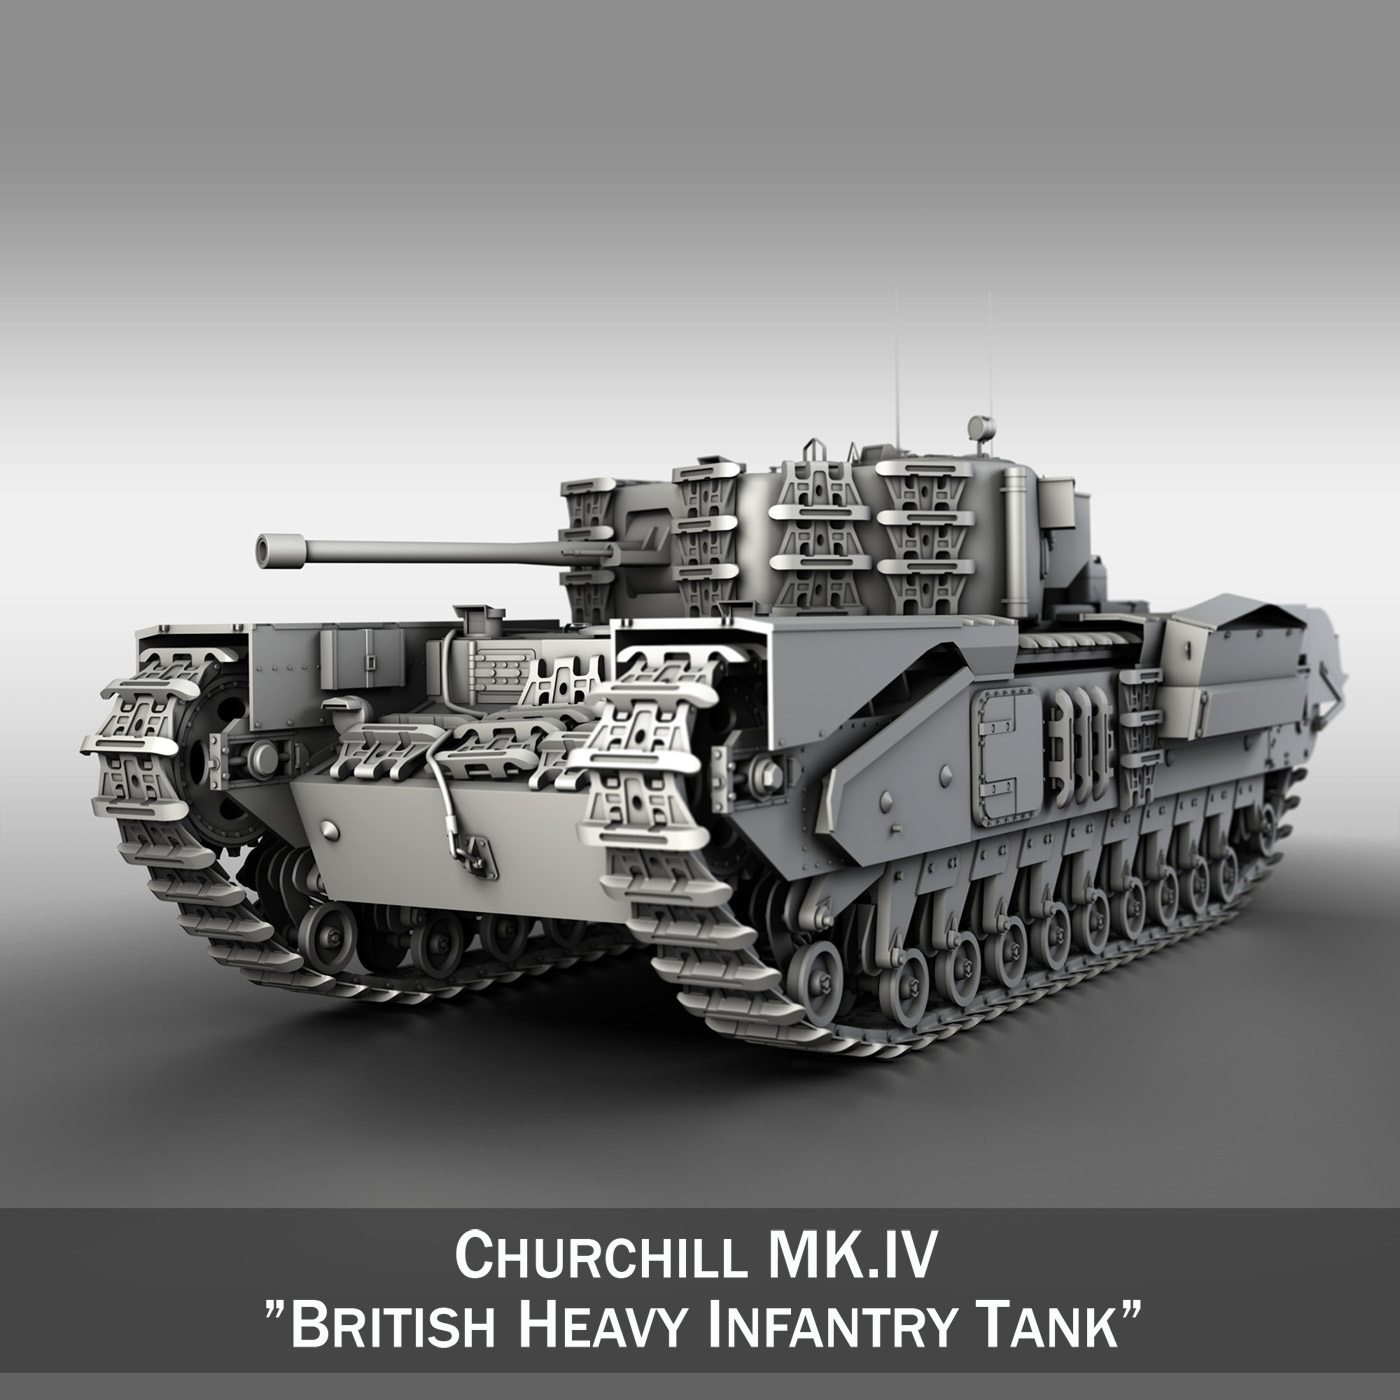 churchill mk iv 3d model 3ds fbx c4d lwo obj 272940